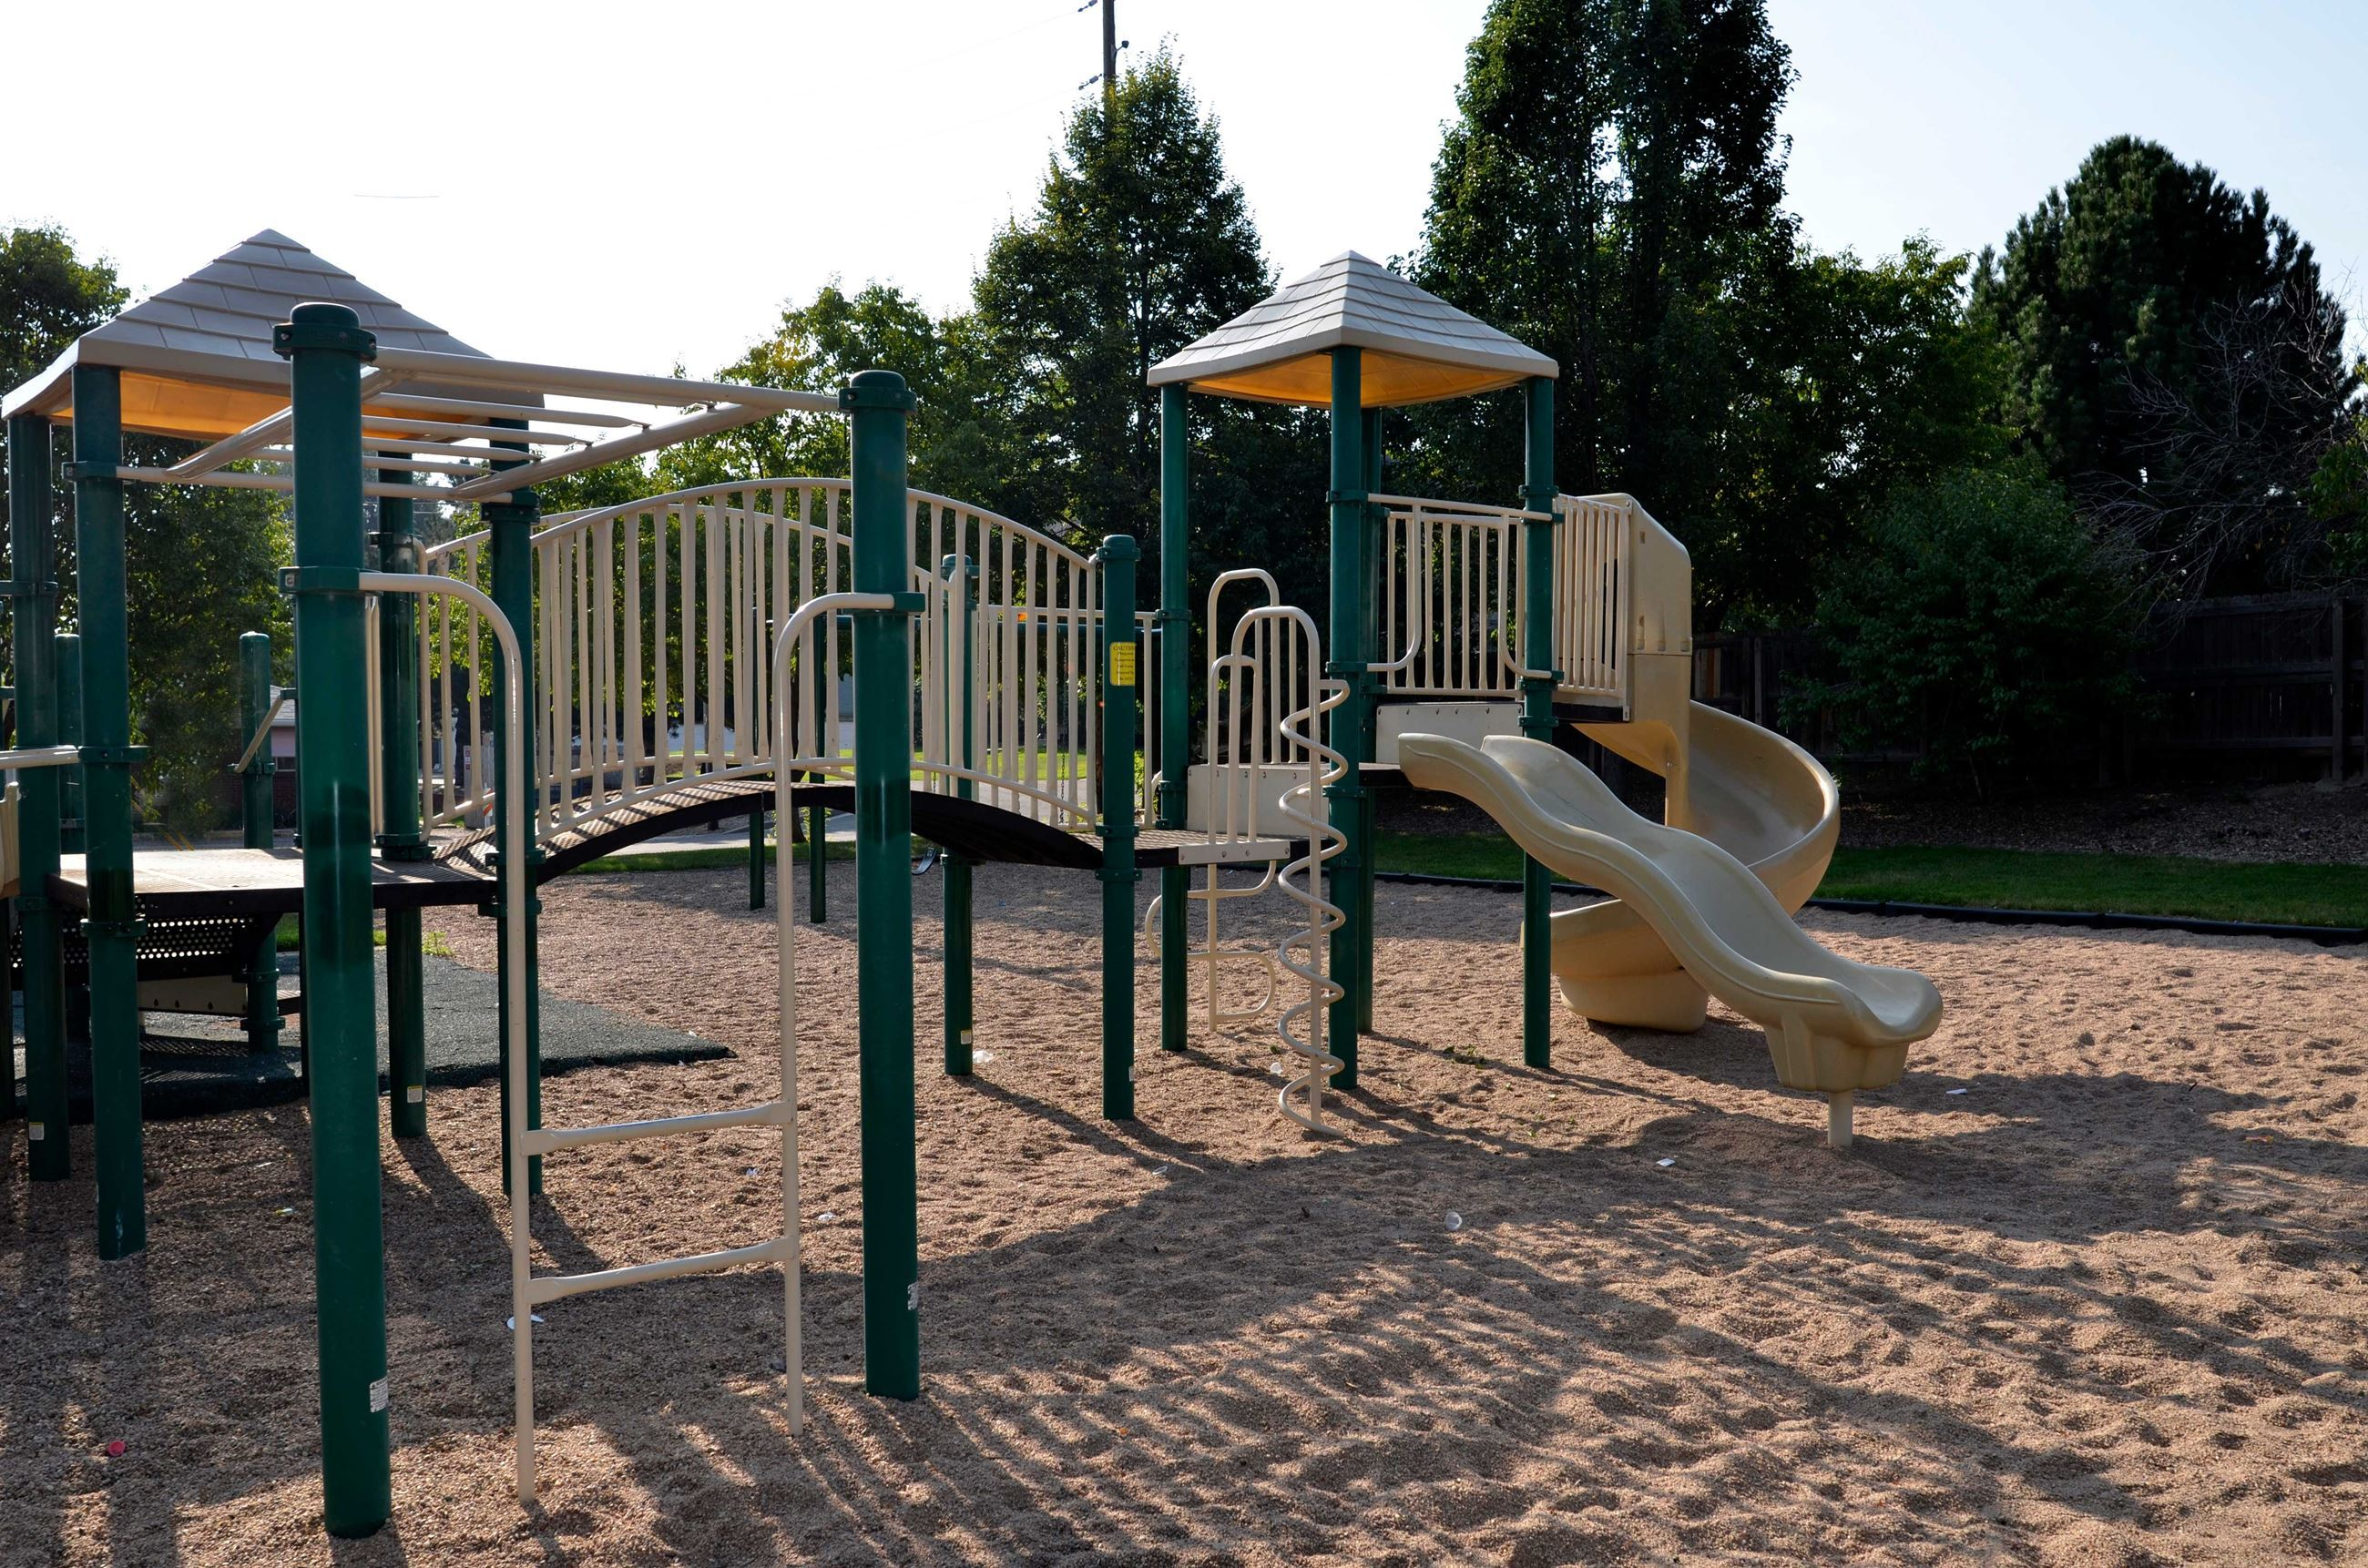 Boyd's Crossing playground